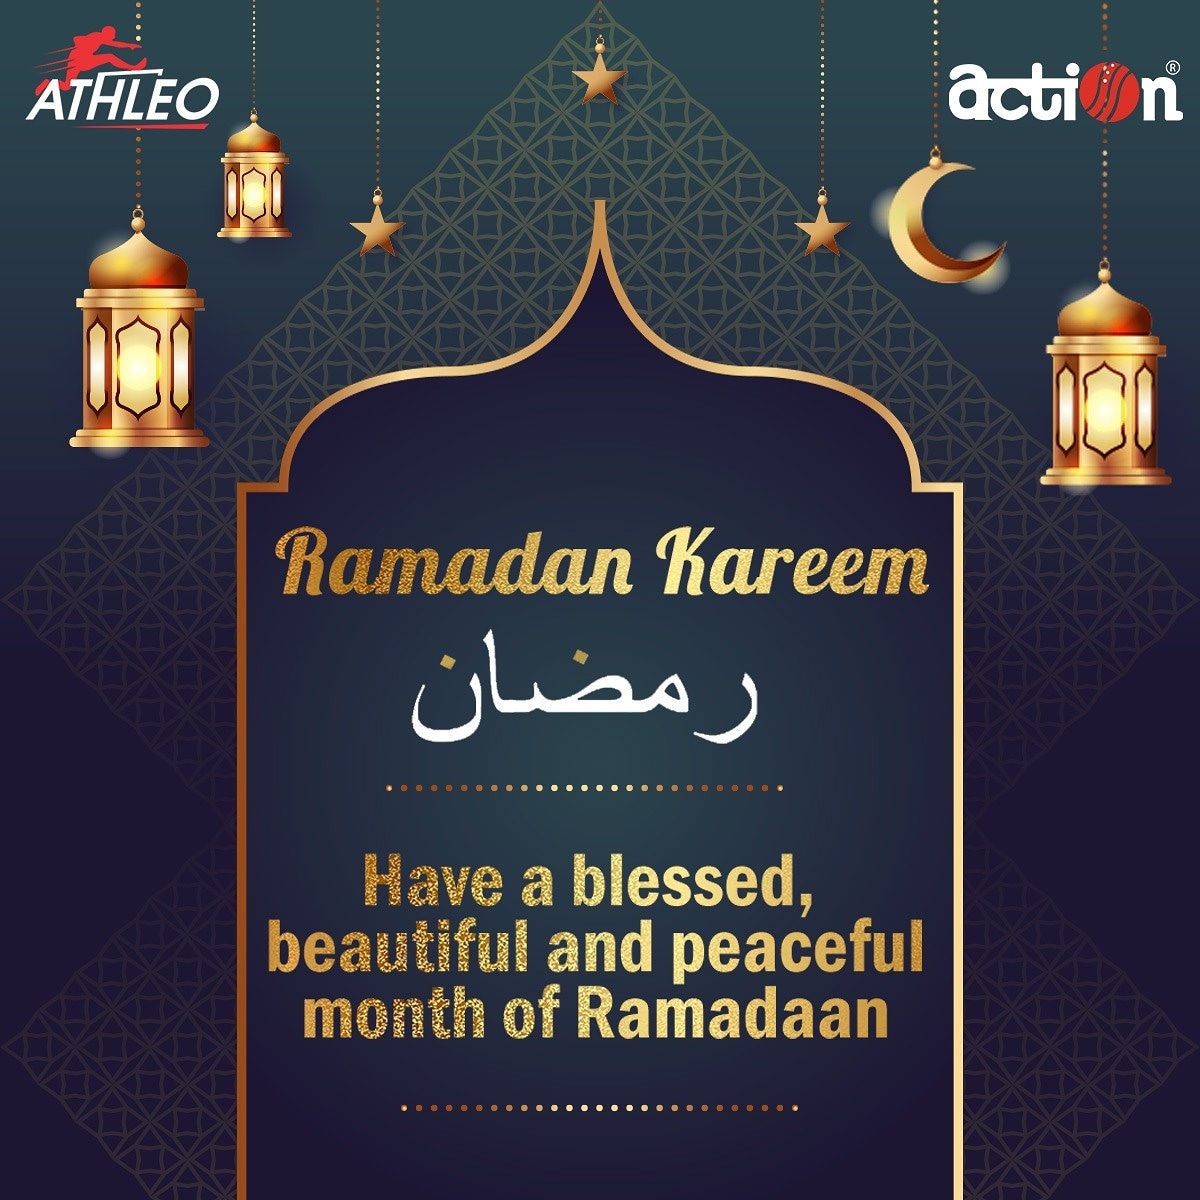 Action wishes you a blessed and safe Ramadan Kareem!  #ramadan2020 #ramadankareem #ramadanvibes #iftar #prayers #allah #Corona #StayFit #AthleoShoes #ActionShoes #quarantine #ShoeShopping #Shoes #Confidence #Fitness #Age #Fit2020 #shoeaddict  #indiafightscorona https://t.co/UskPeeq5HP